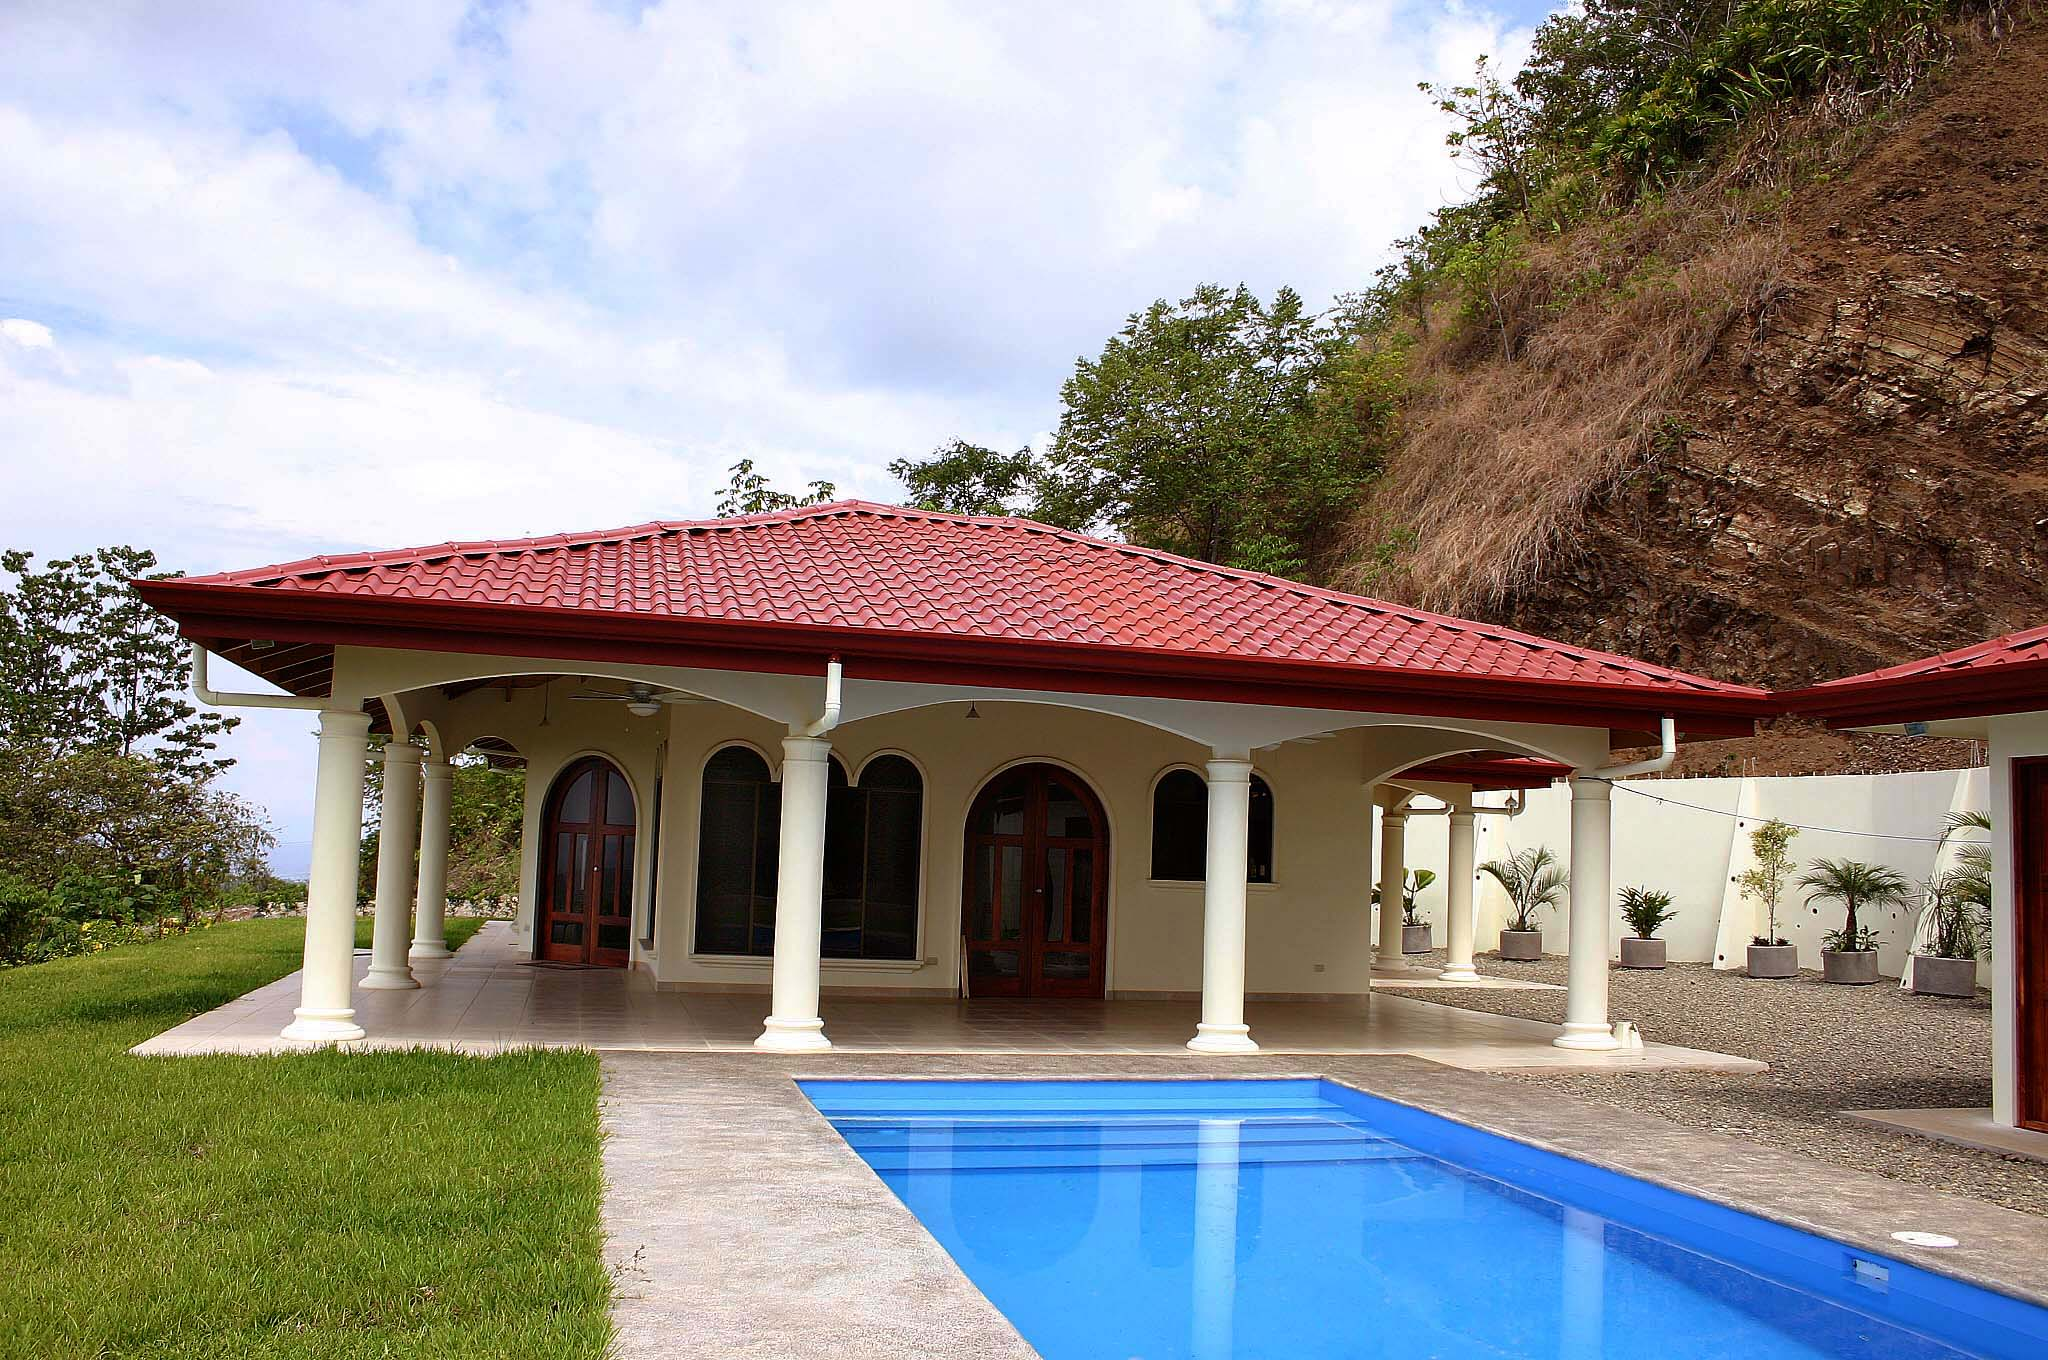 Costa rica pictures of homes interiors property in costa for Costa rica vacation homes